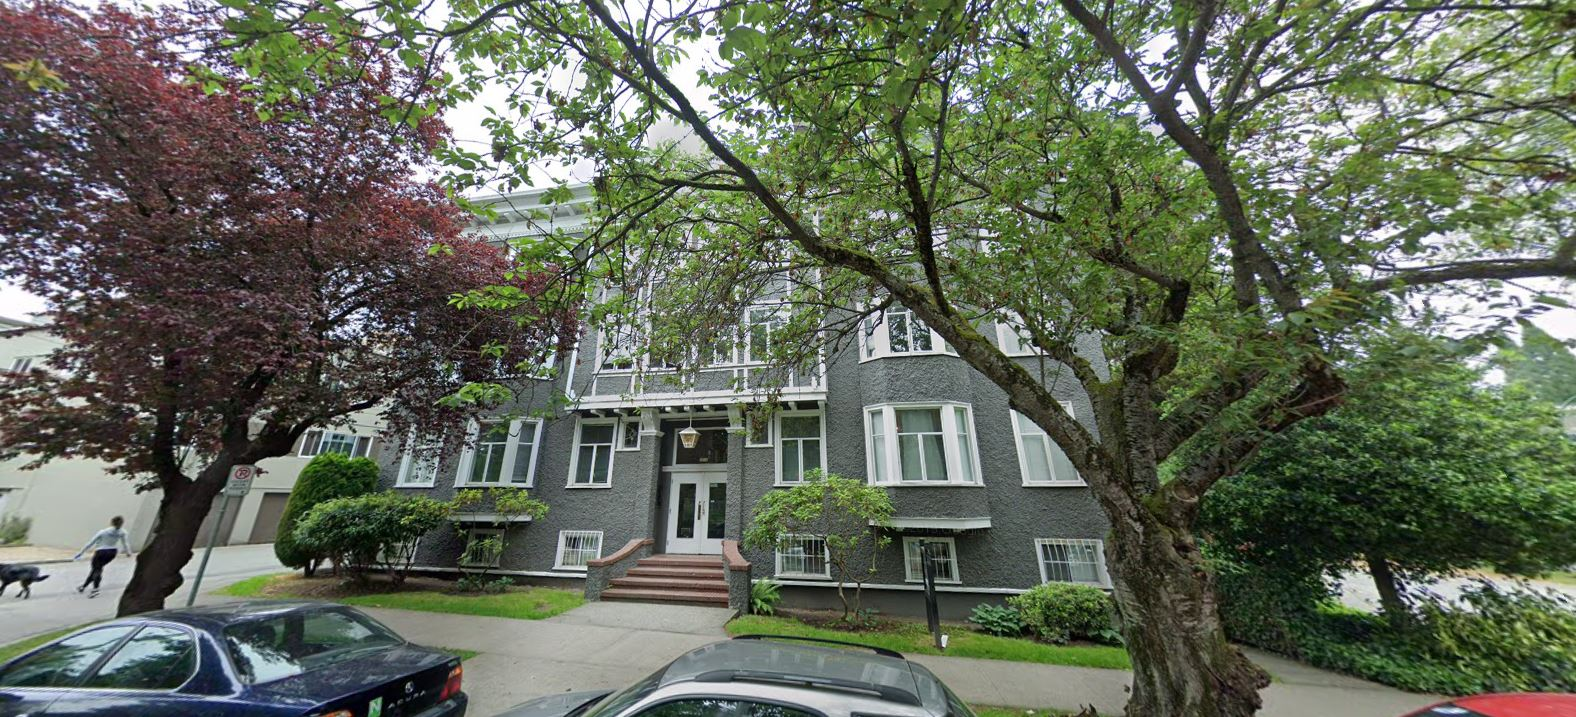 1019 Bute Street, Vancouver